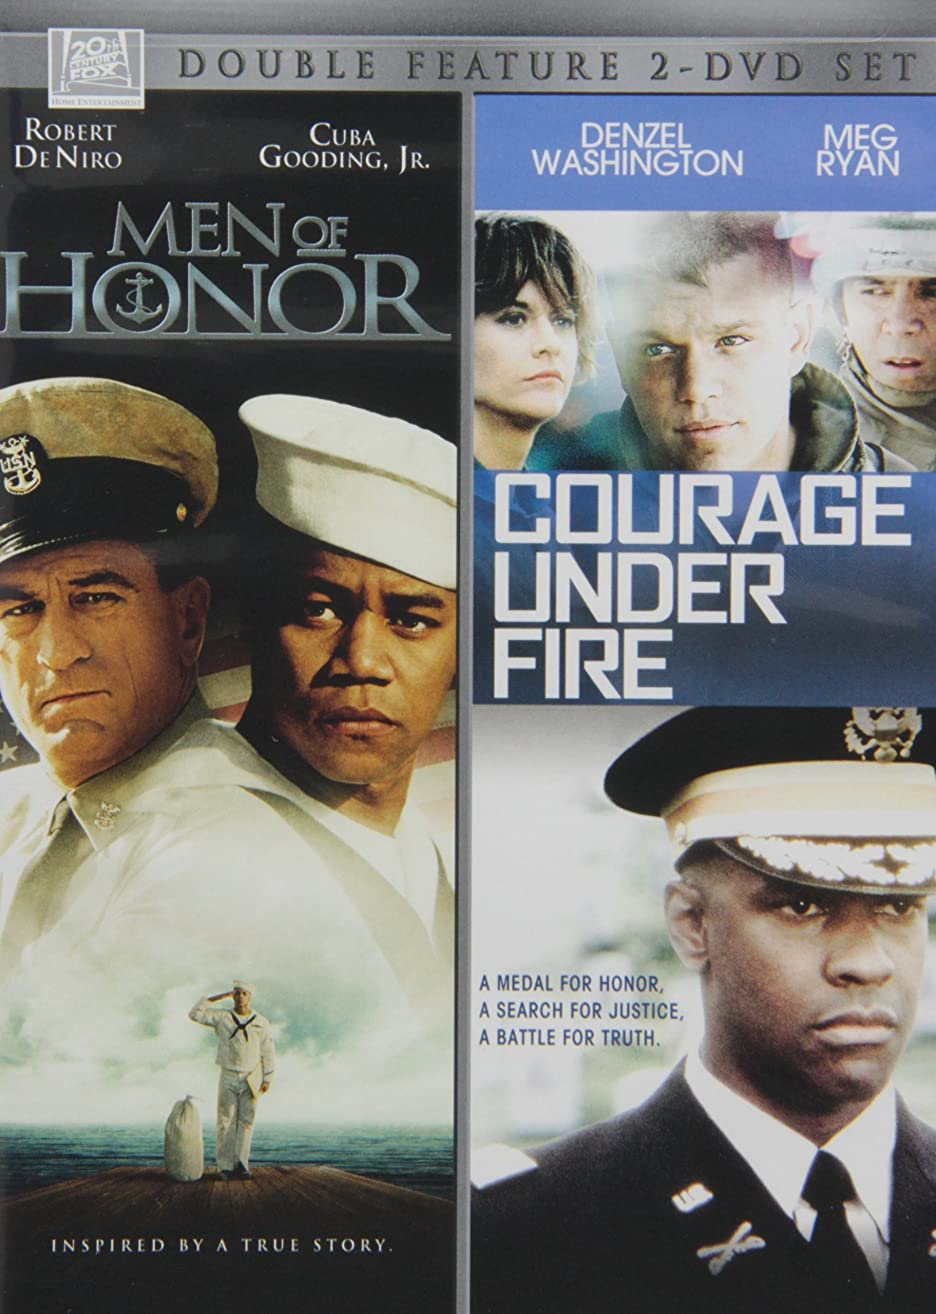 Men of Honor / Courage Under Fire Double Feature